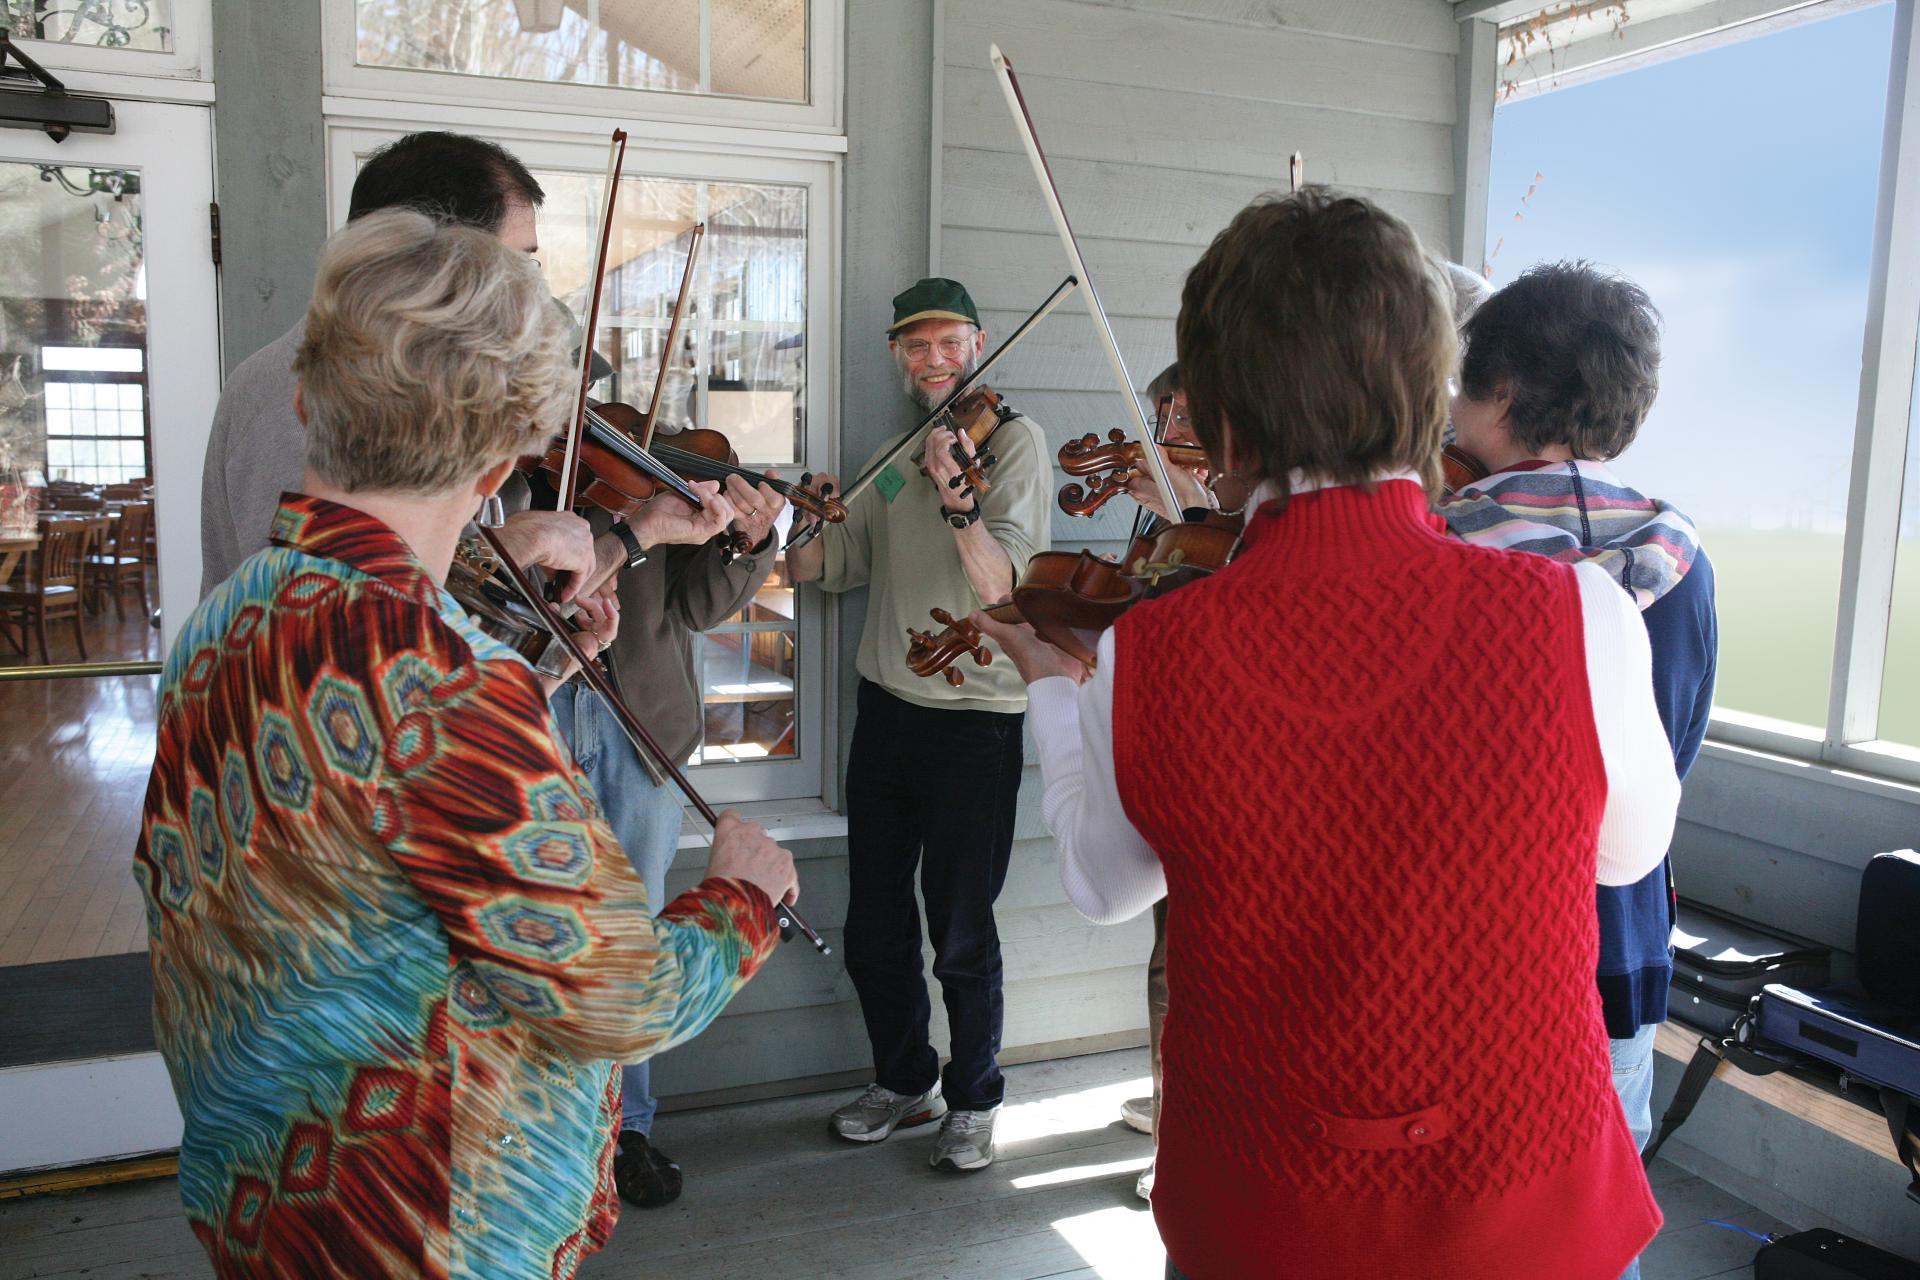 A group of fiddlers participating in an outdoor class